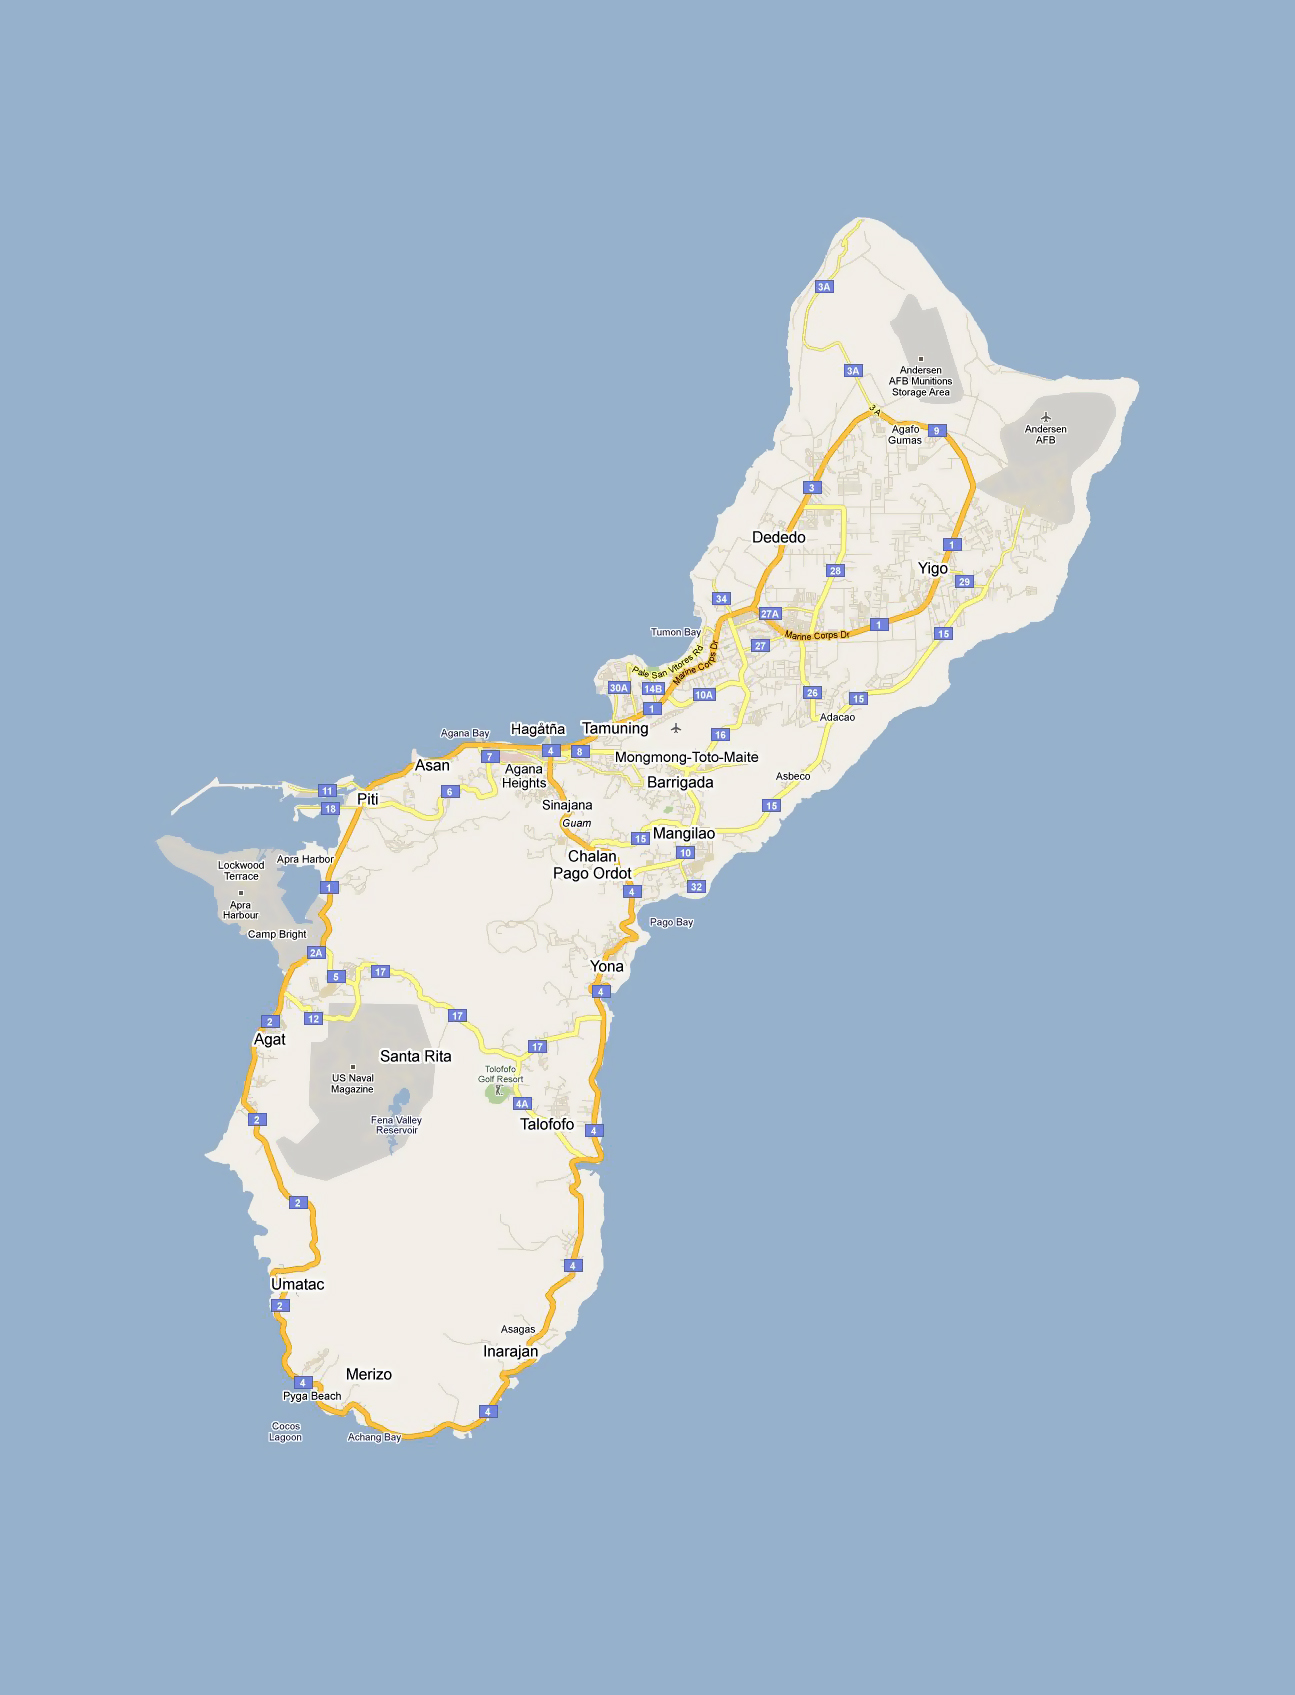 Detailed Road Map Of Guam With Cities And Villages Guam - Guam world map